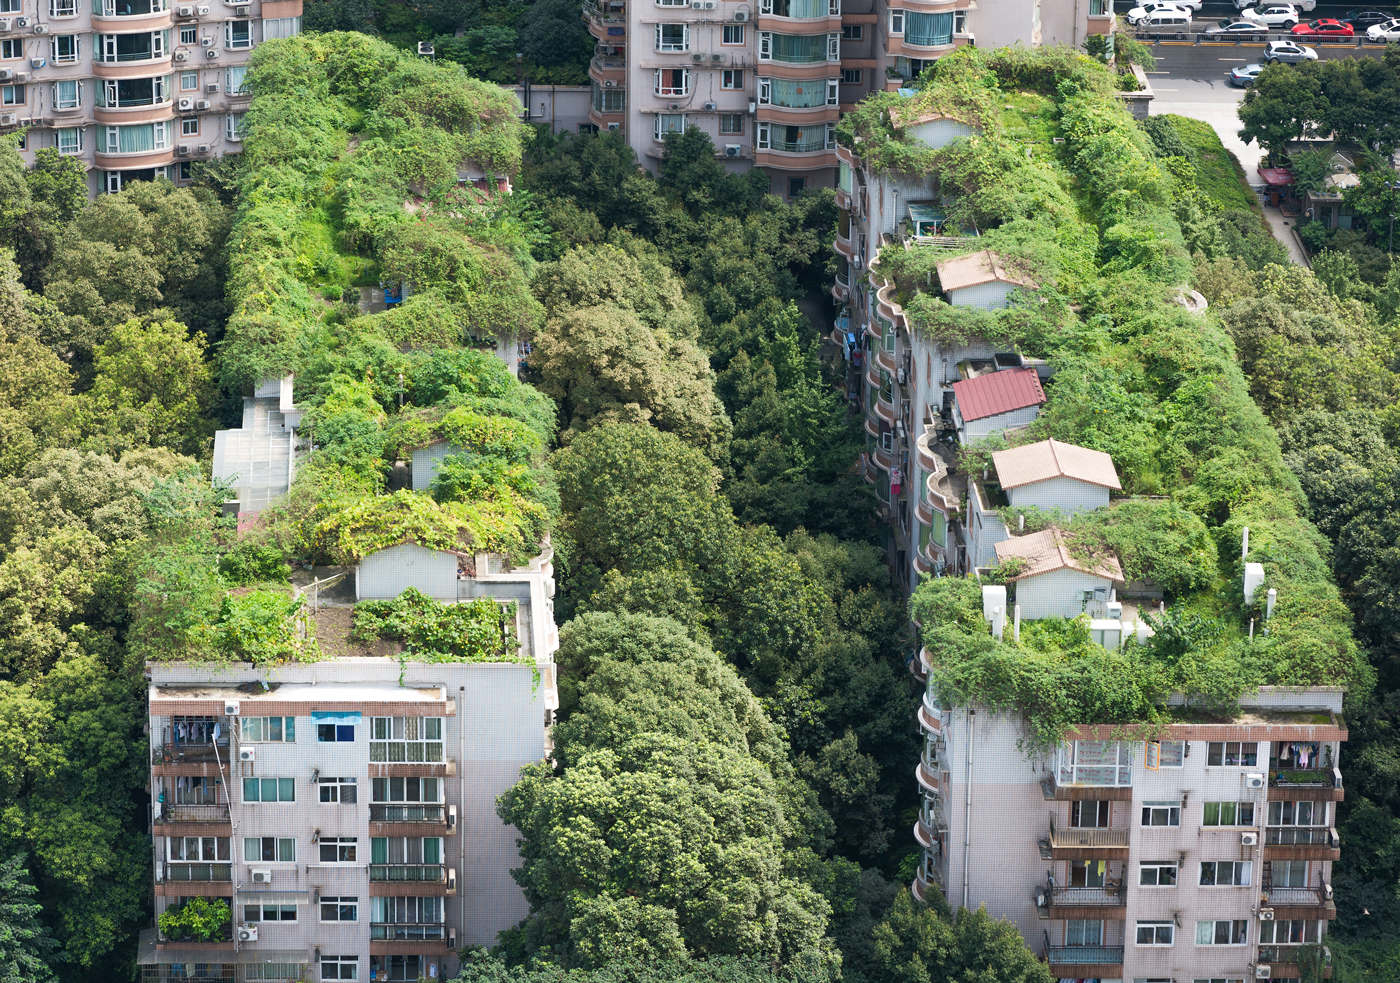 Green roofs in an urban, resilient area